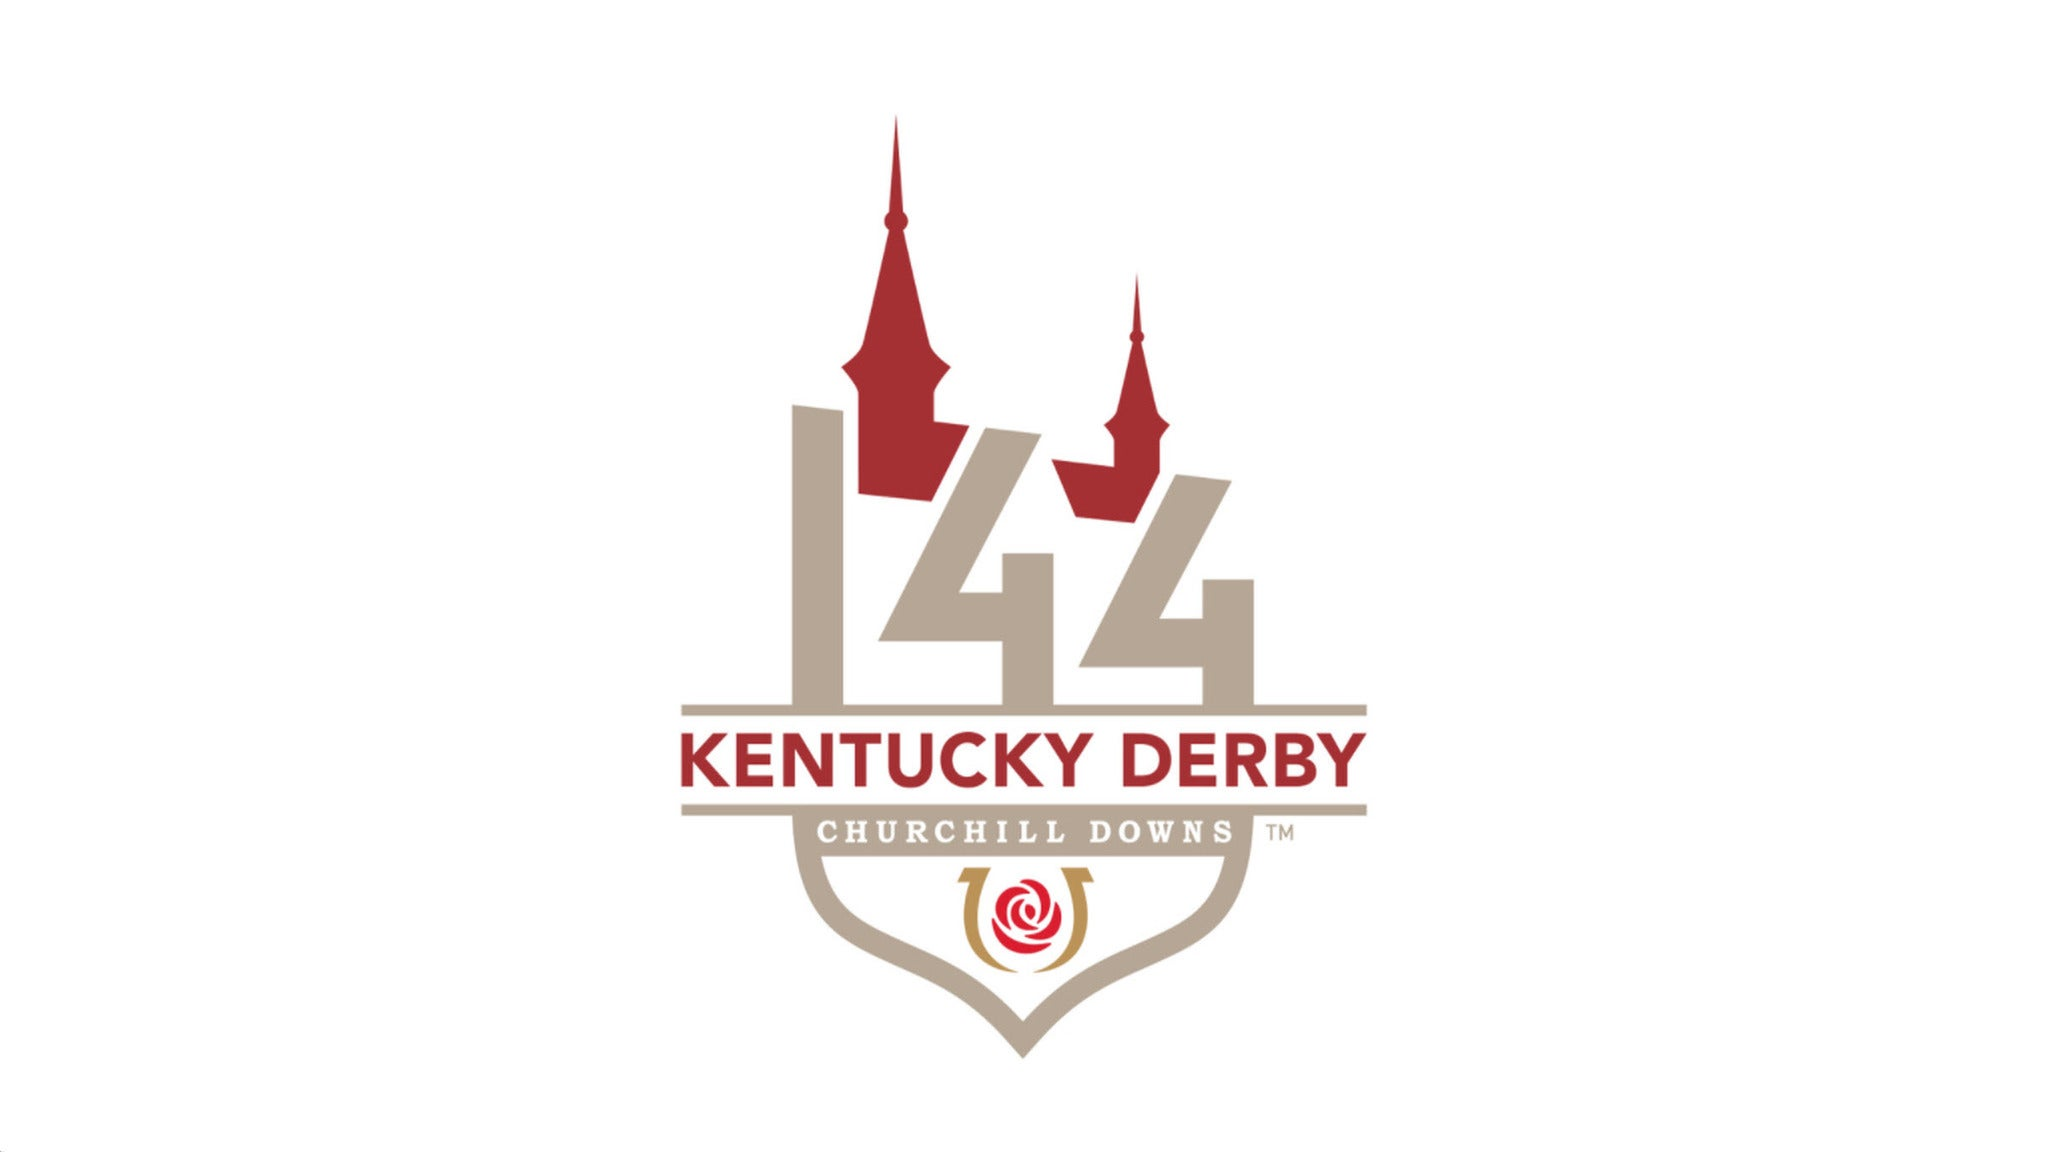 144th Kentucky Derby - Reserved Dining at Churchill Downs